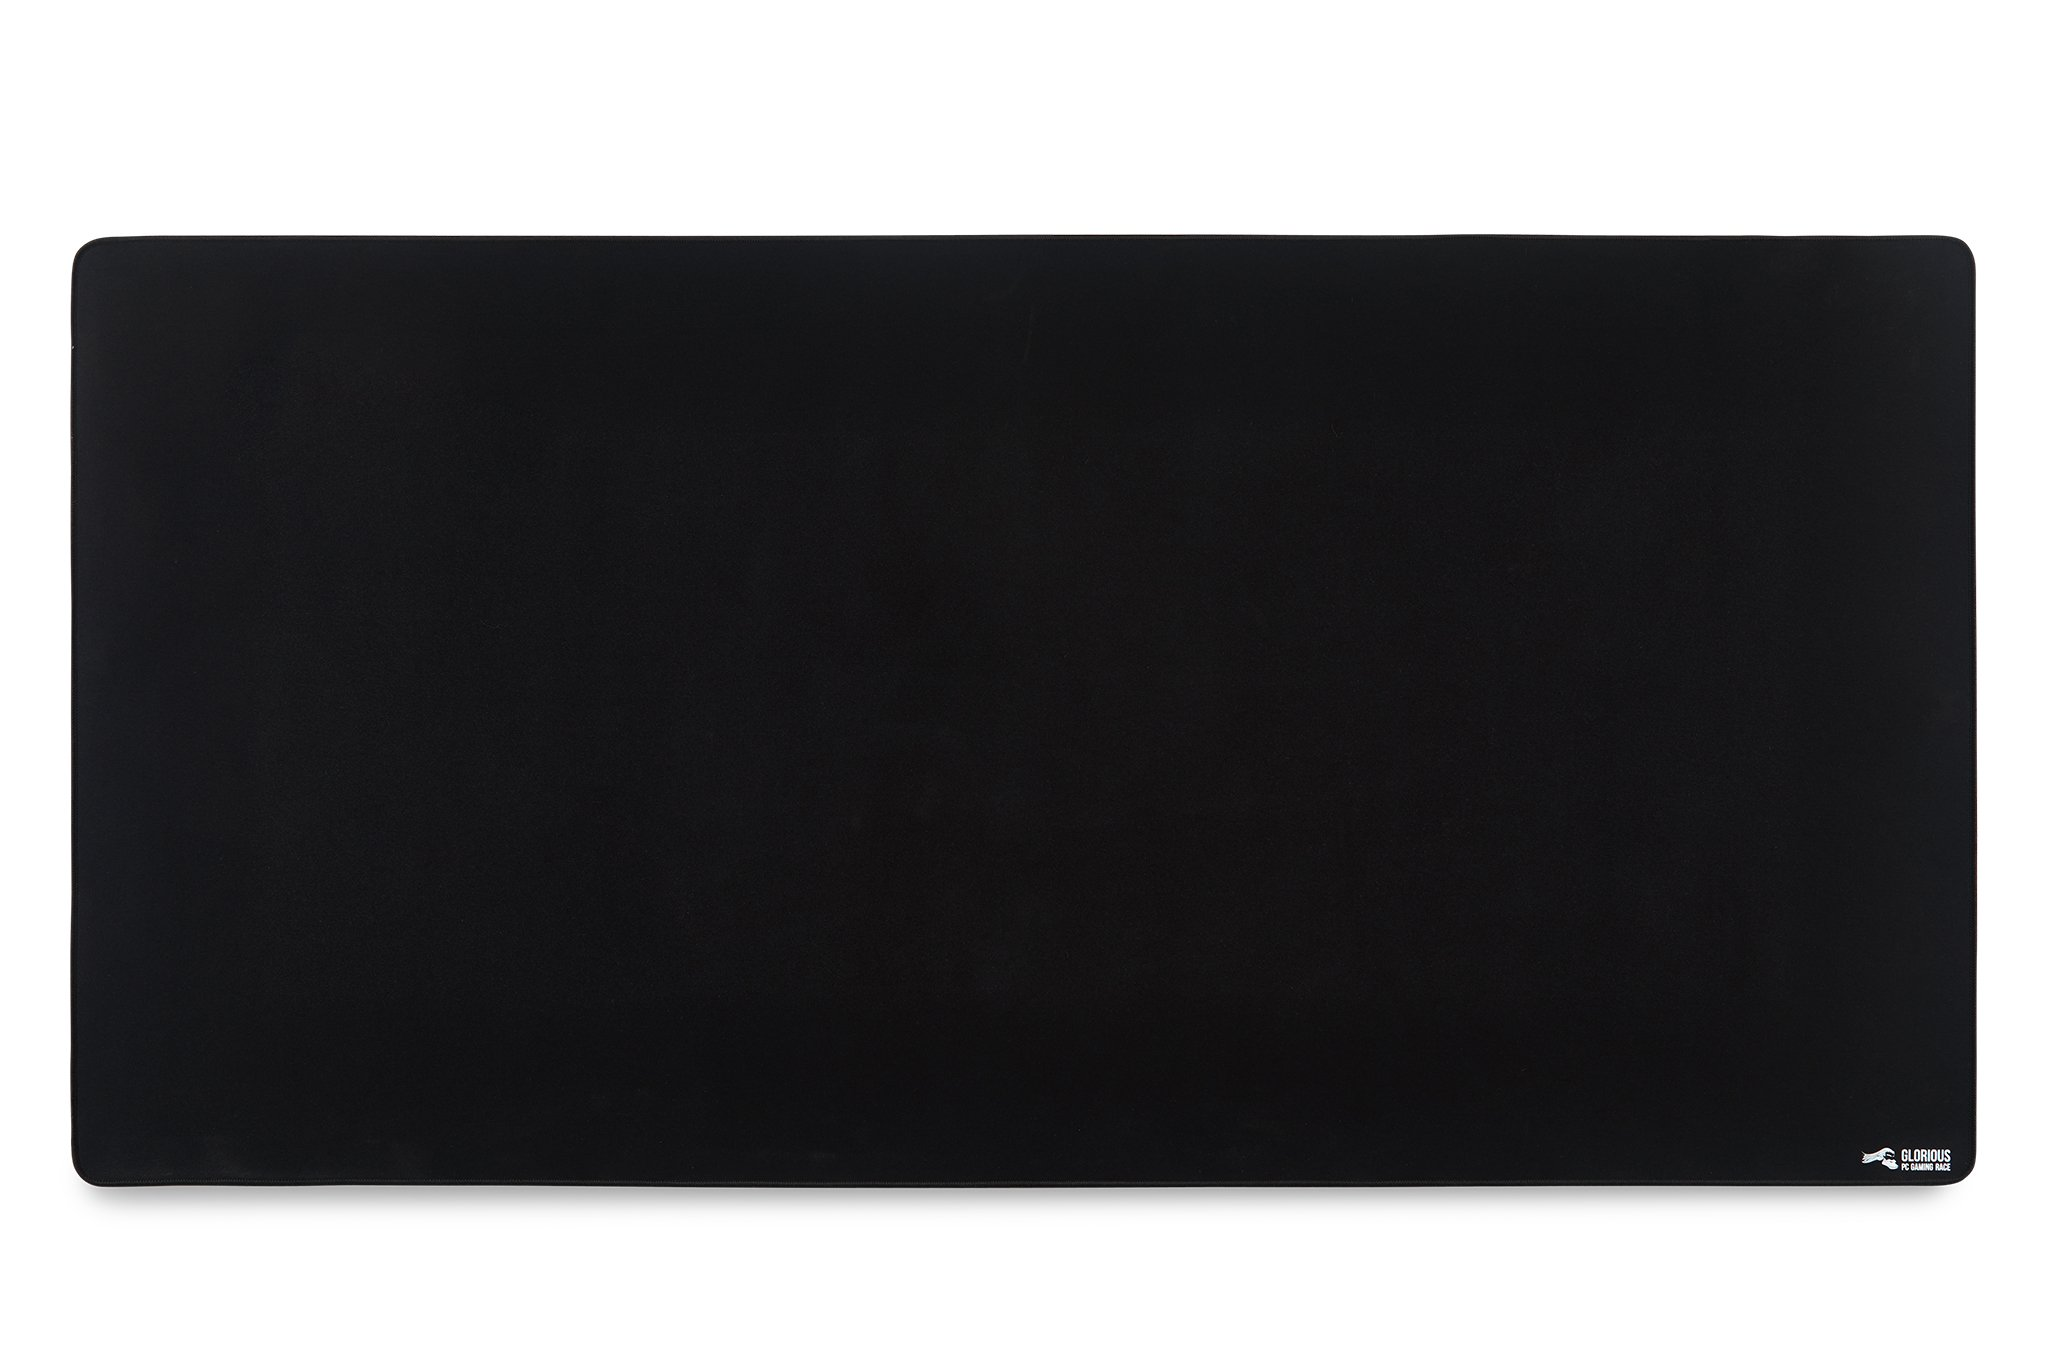 Glorious PC Gaming Race 3XL Extended Gaming Mouse Mat / Pad - Large, Wide (Long) Black Mousepad, Stitched Edges | 1219x610x3mm (G-3XL)